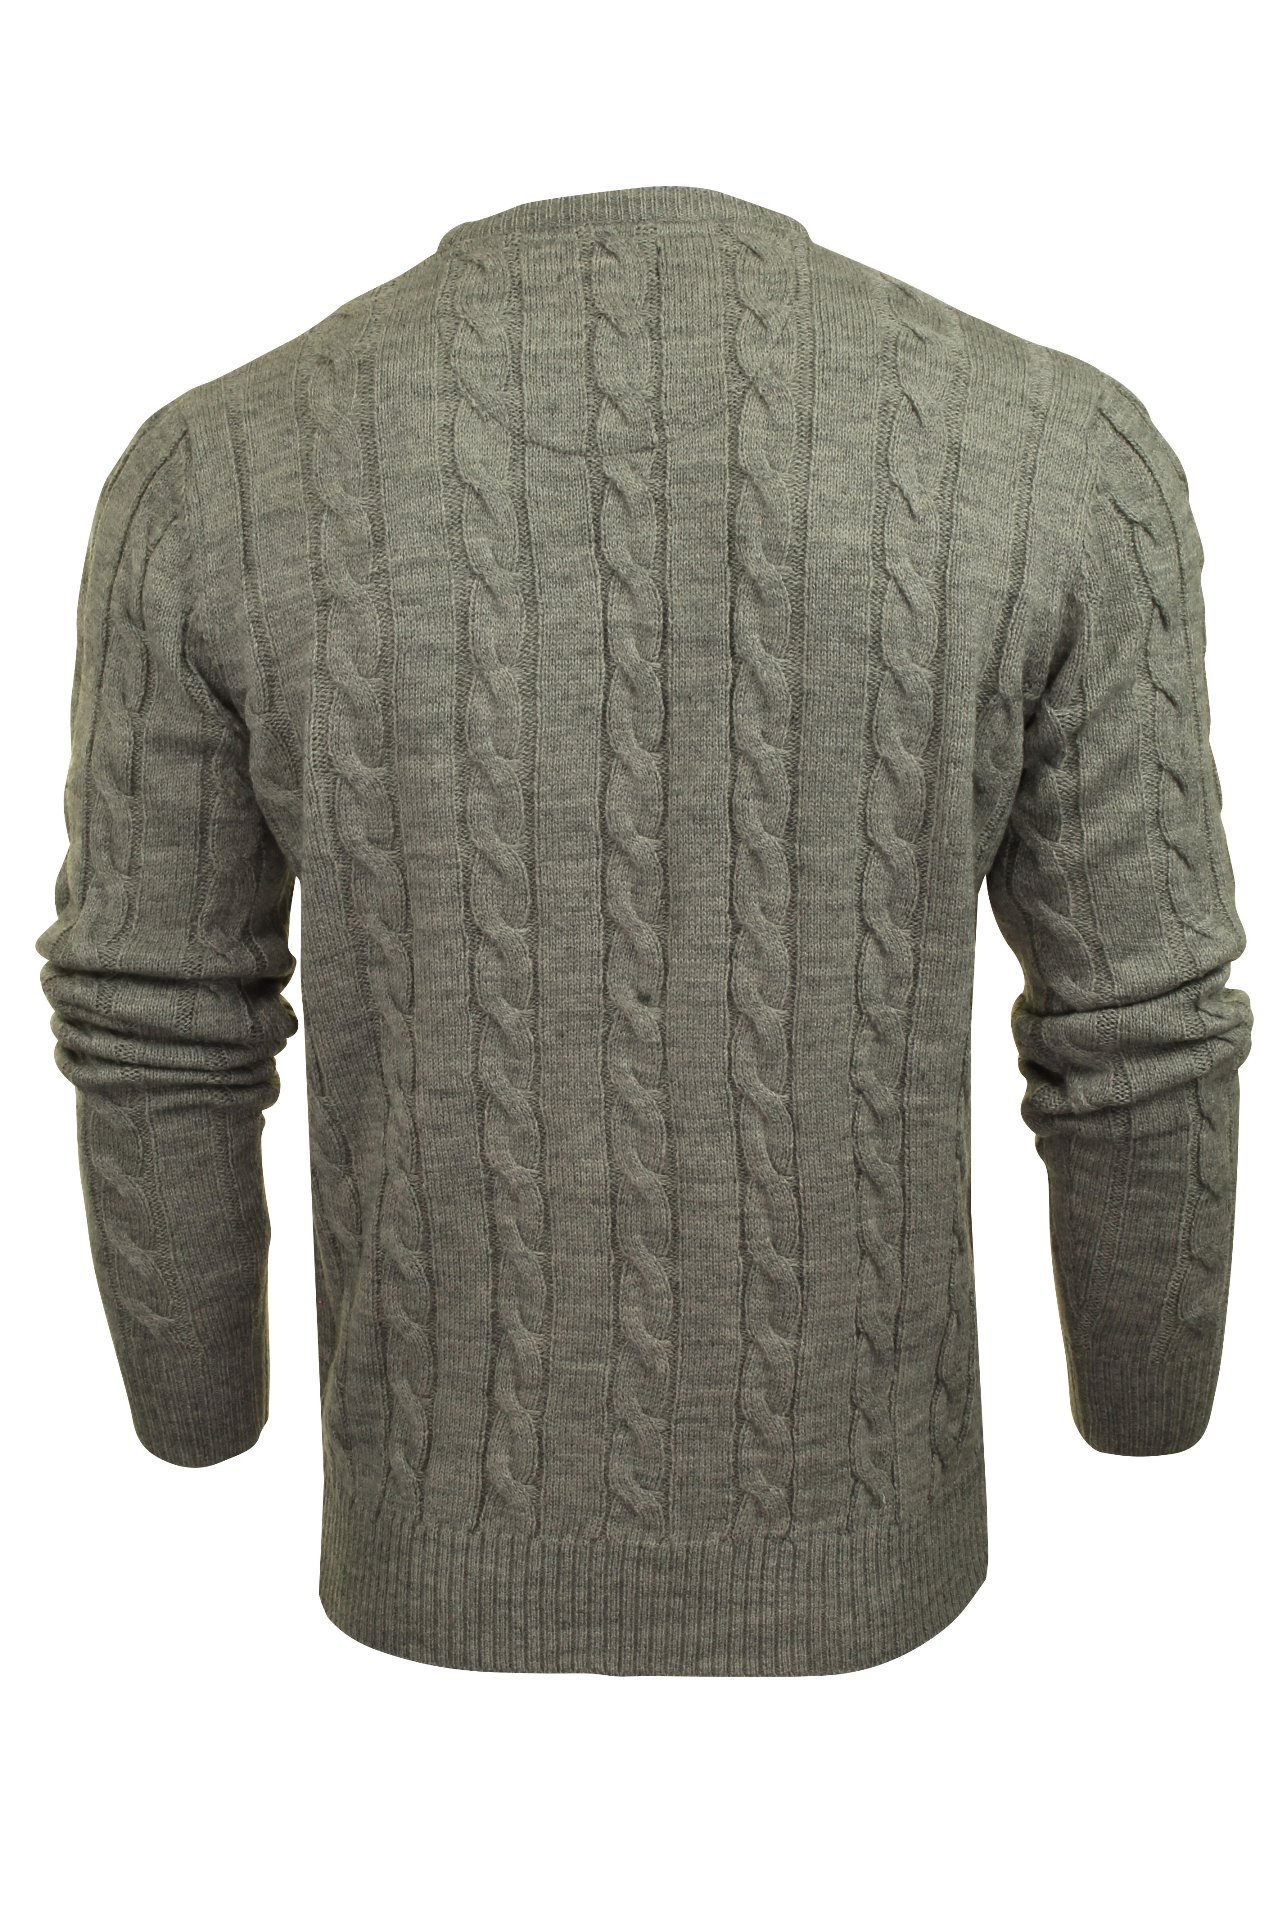 Brave-Soul-039-Maoism-039-Mens-Cable-Knit-Jumper thumbnail 17